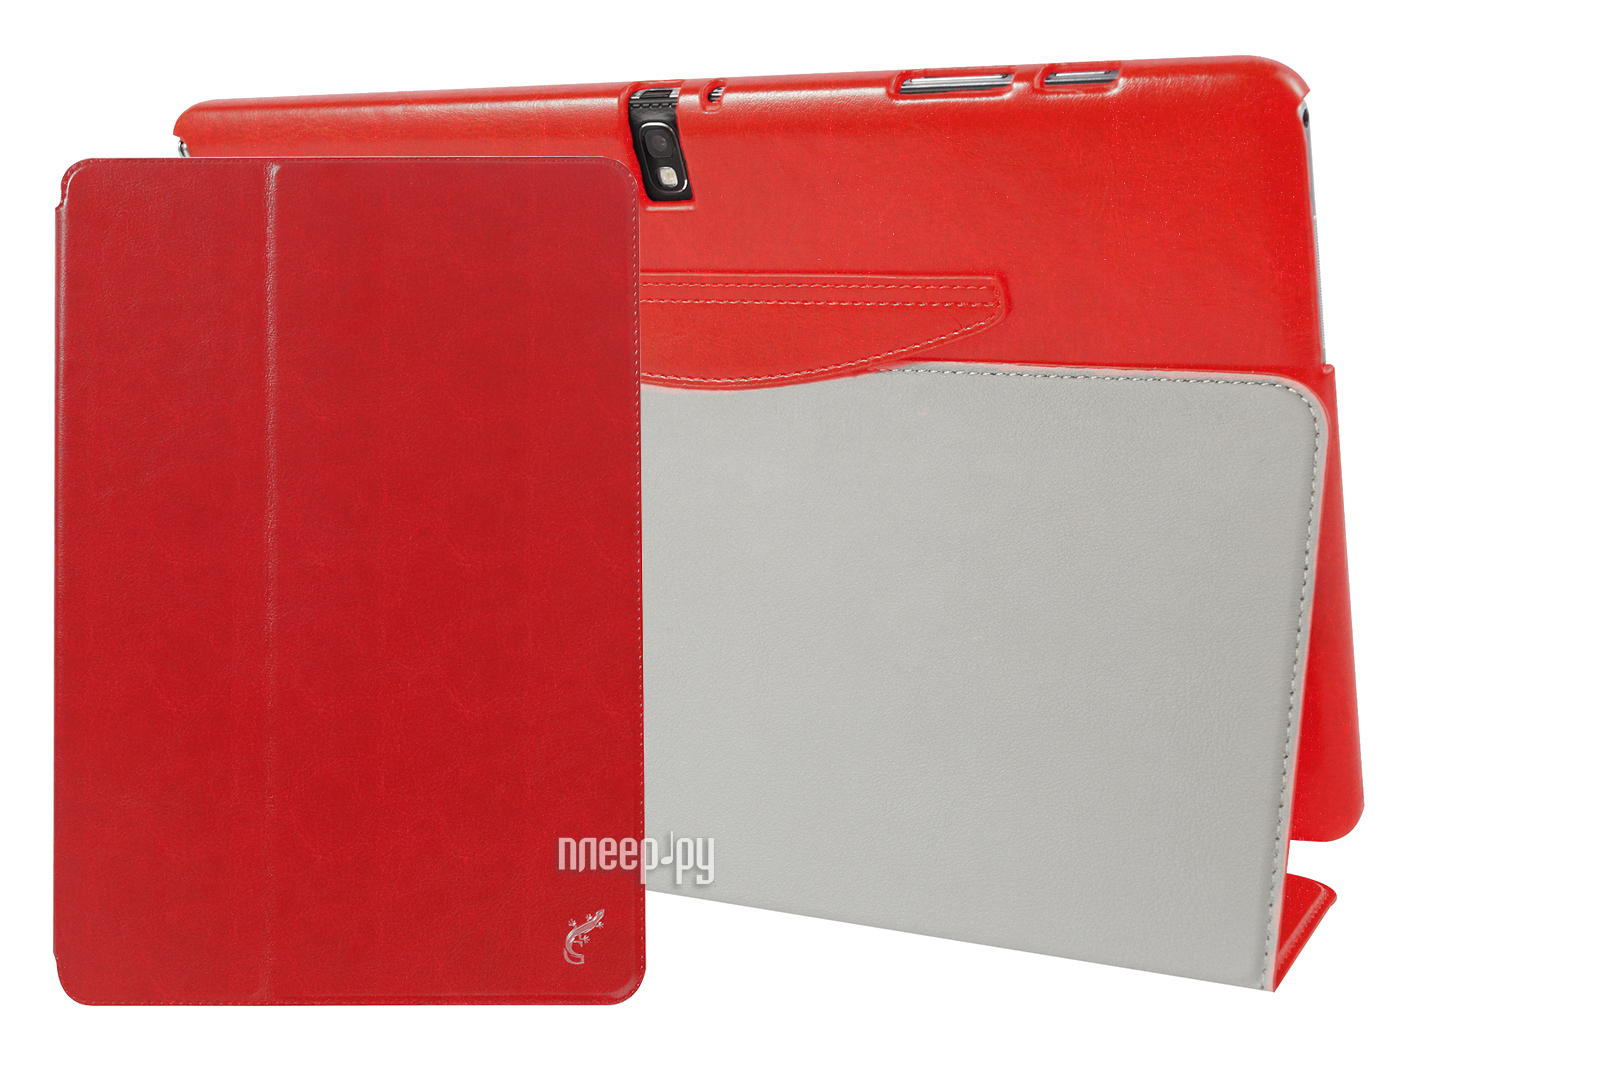 Аксессуар Чехол G-Case for Samsung Galaxy Tab Pro 12.2 T900 / Galaxy Note Pro 12.2 P9000 Slim Premium Red GG-319  Pleer.ru  1201.000